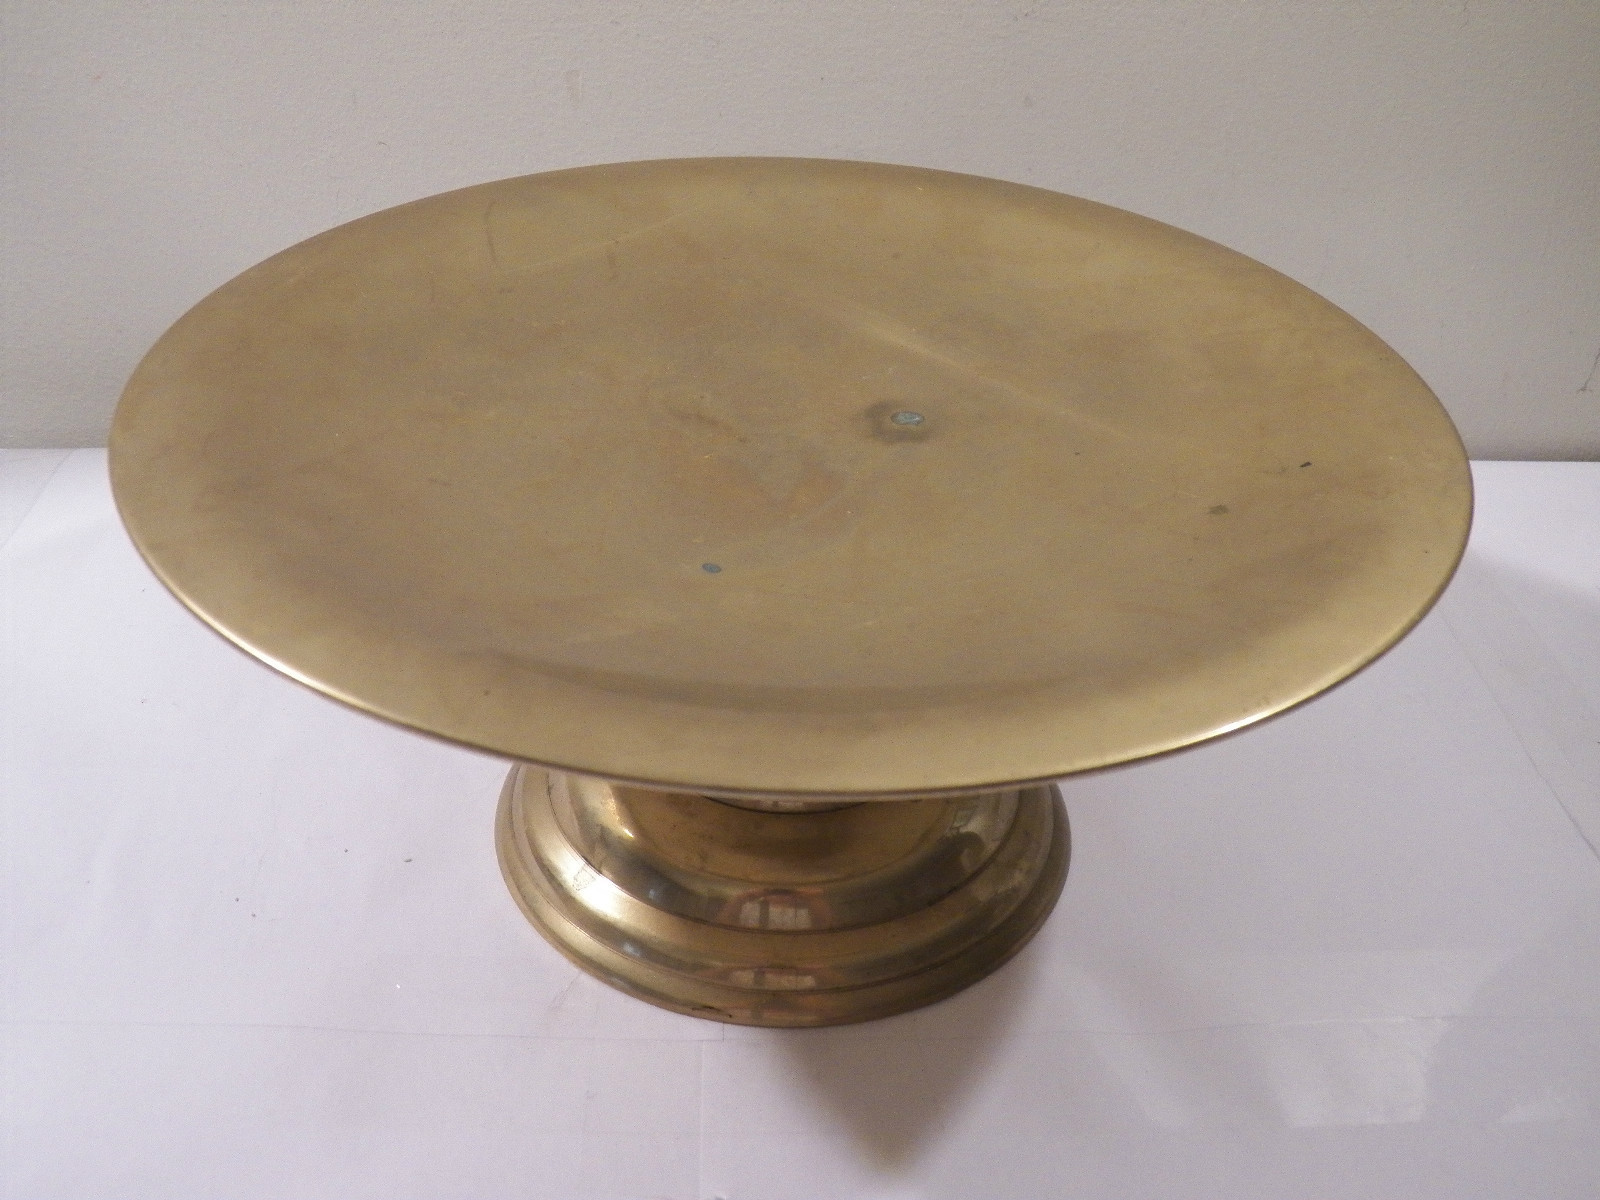 You searched for: brass cake stand! Etsy is the home to thousands of handmade, vintage, and one-of-a-kind products and gifts related to your search. No matter what you're looking for or where you are in the world, our global marketplace of sellers can help you find unique and affordable options. Let's get started!